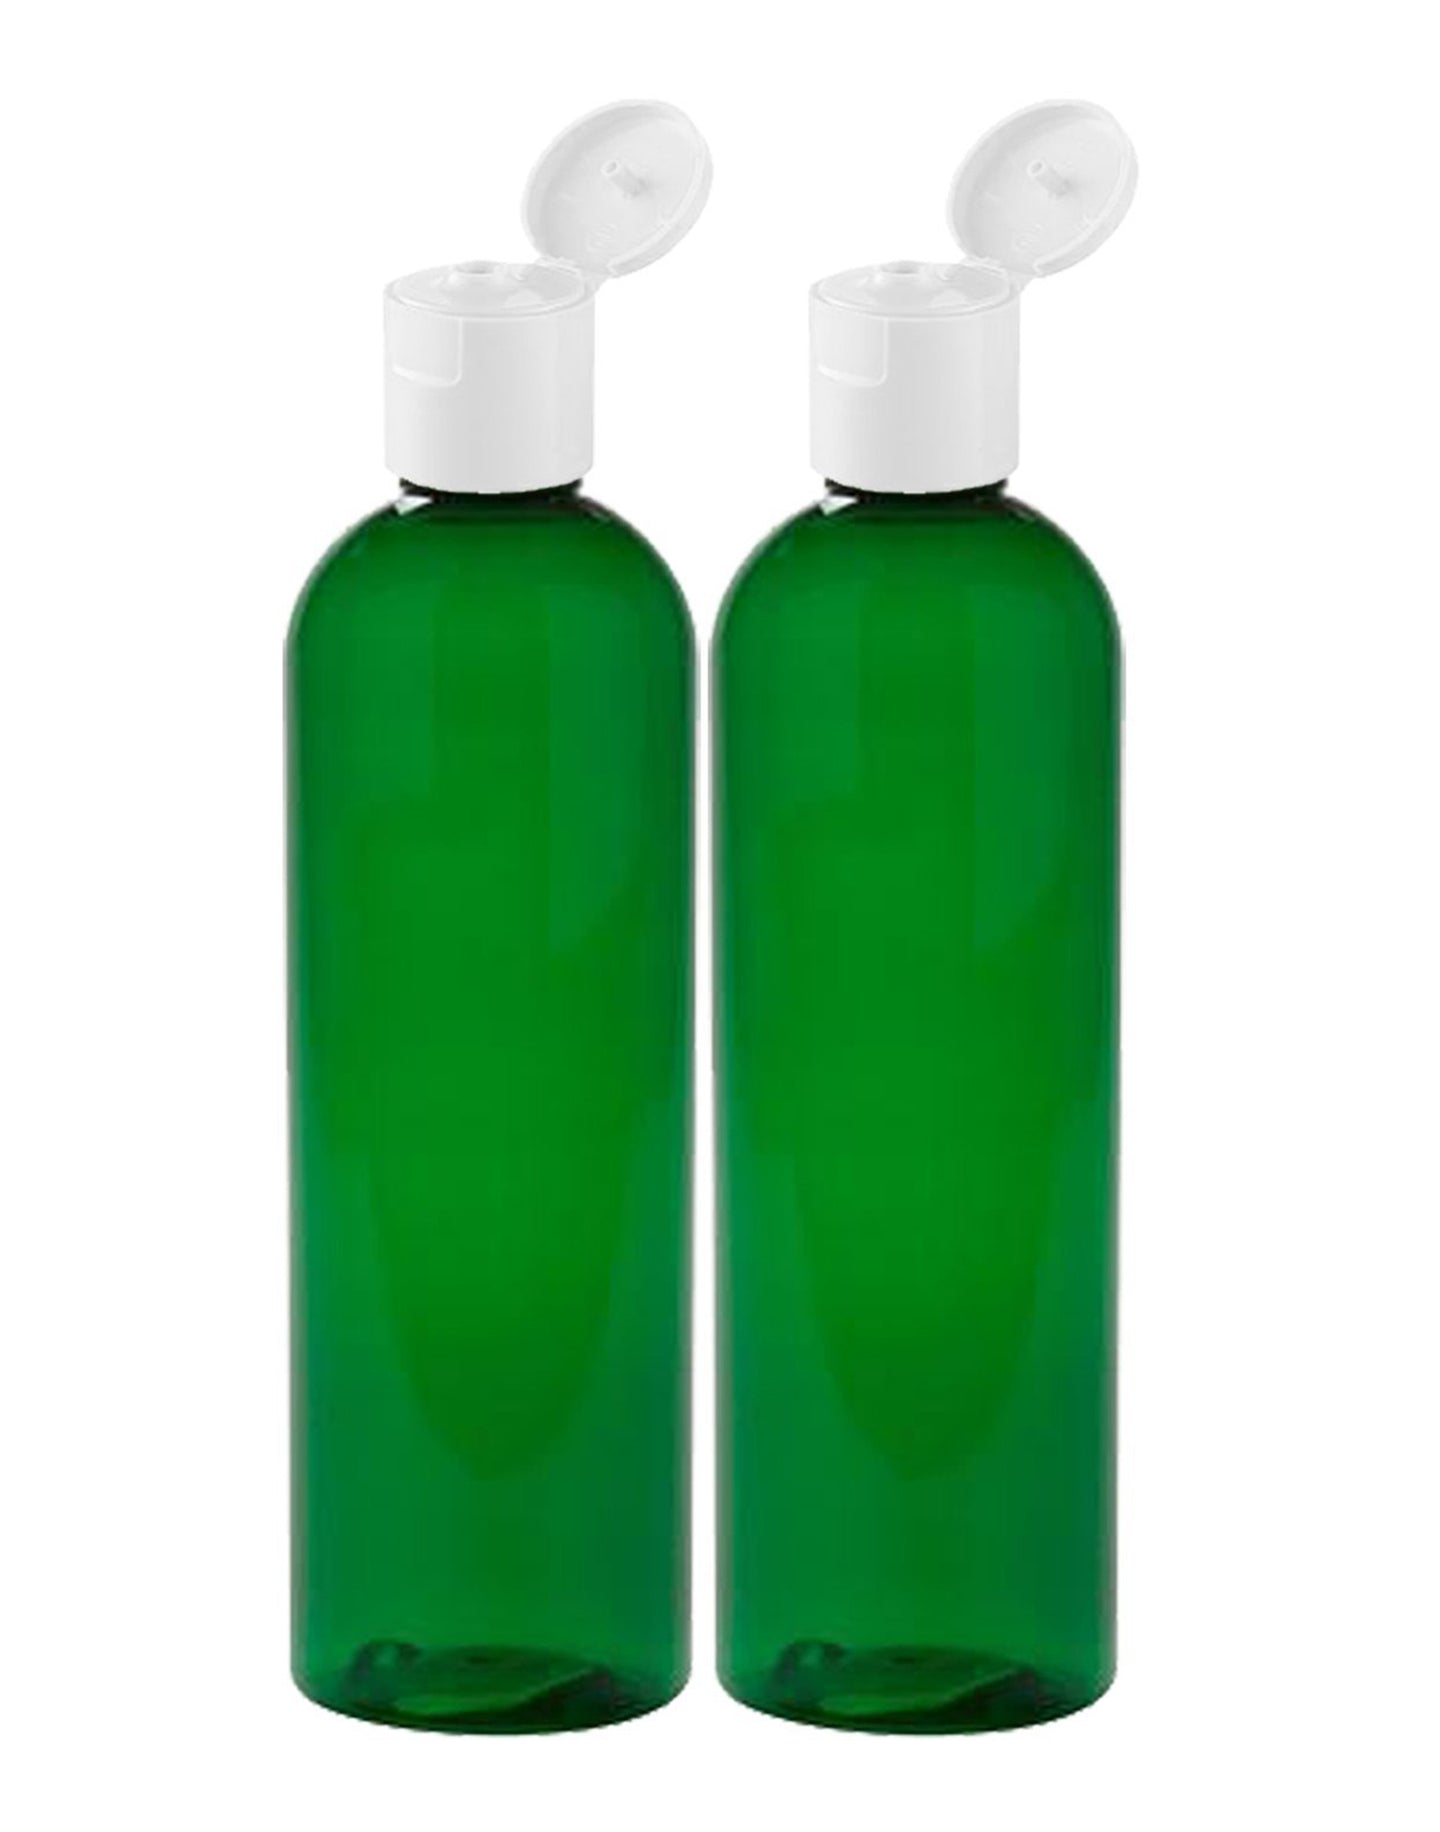 MoYo Natural Labs 8 oz Travel Bottles, Empty Travel Containers with Flip Caps, BPA Free PET Plastic Squeezable Toiletry/Cosmetic Bottles (2 pack, Forest Green)